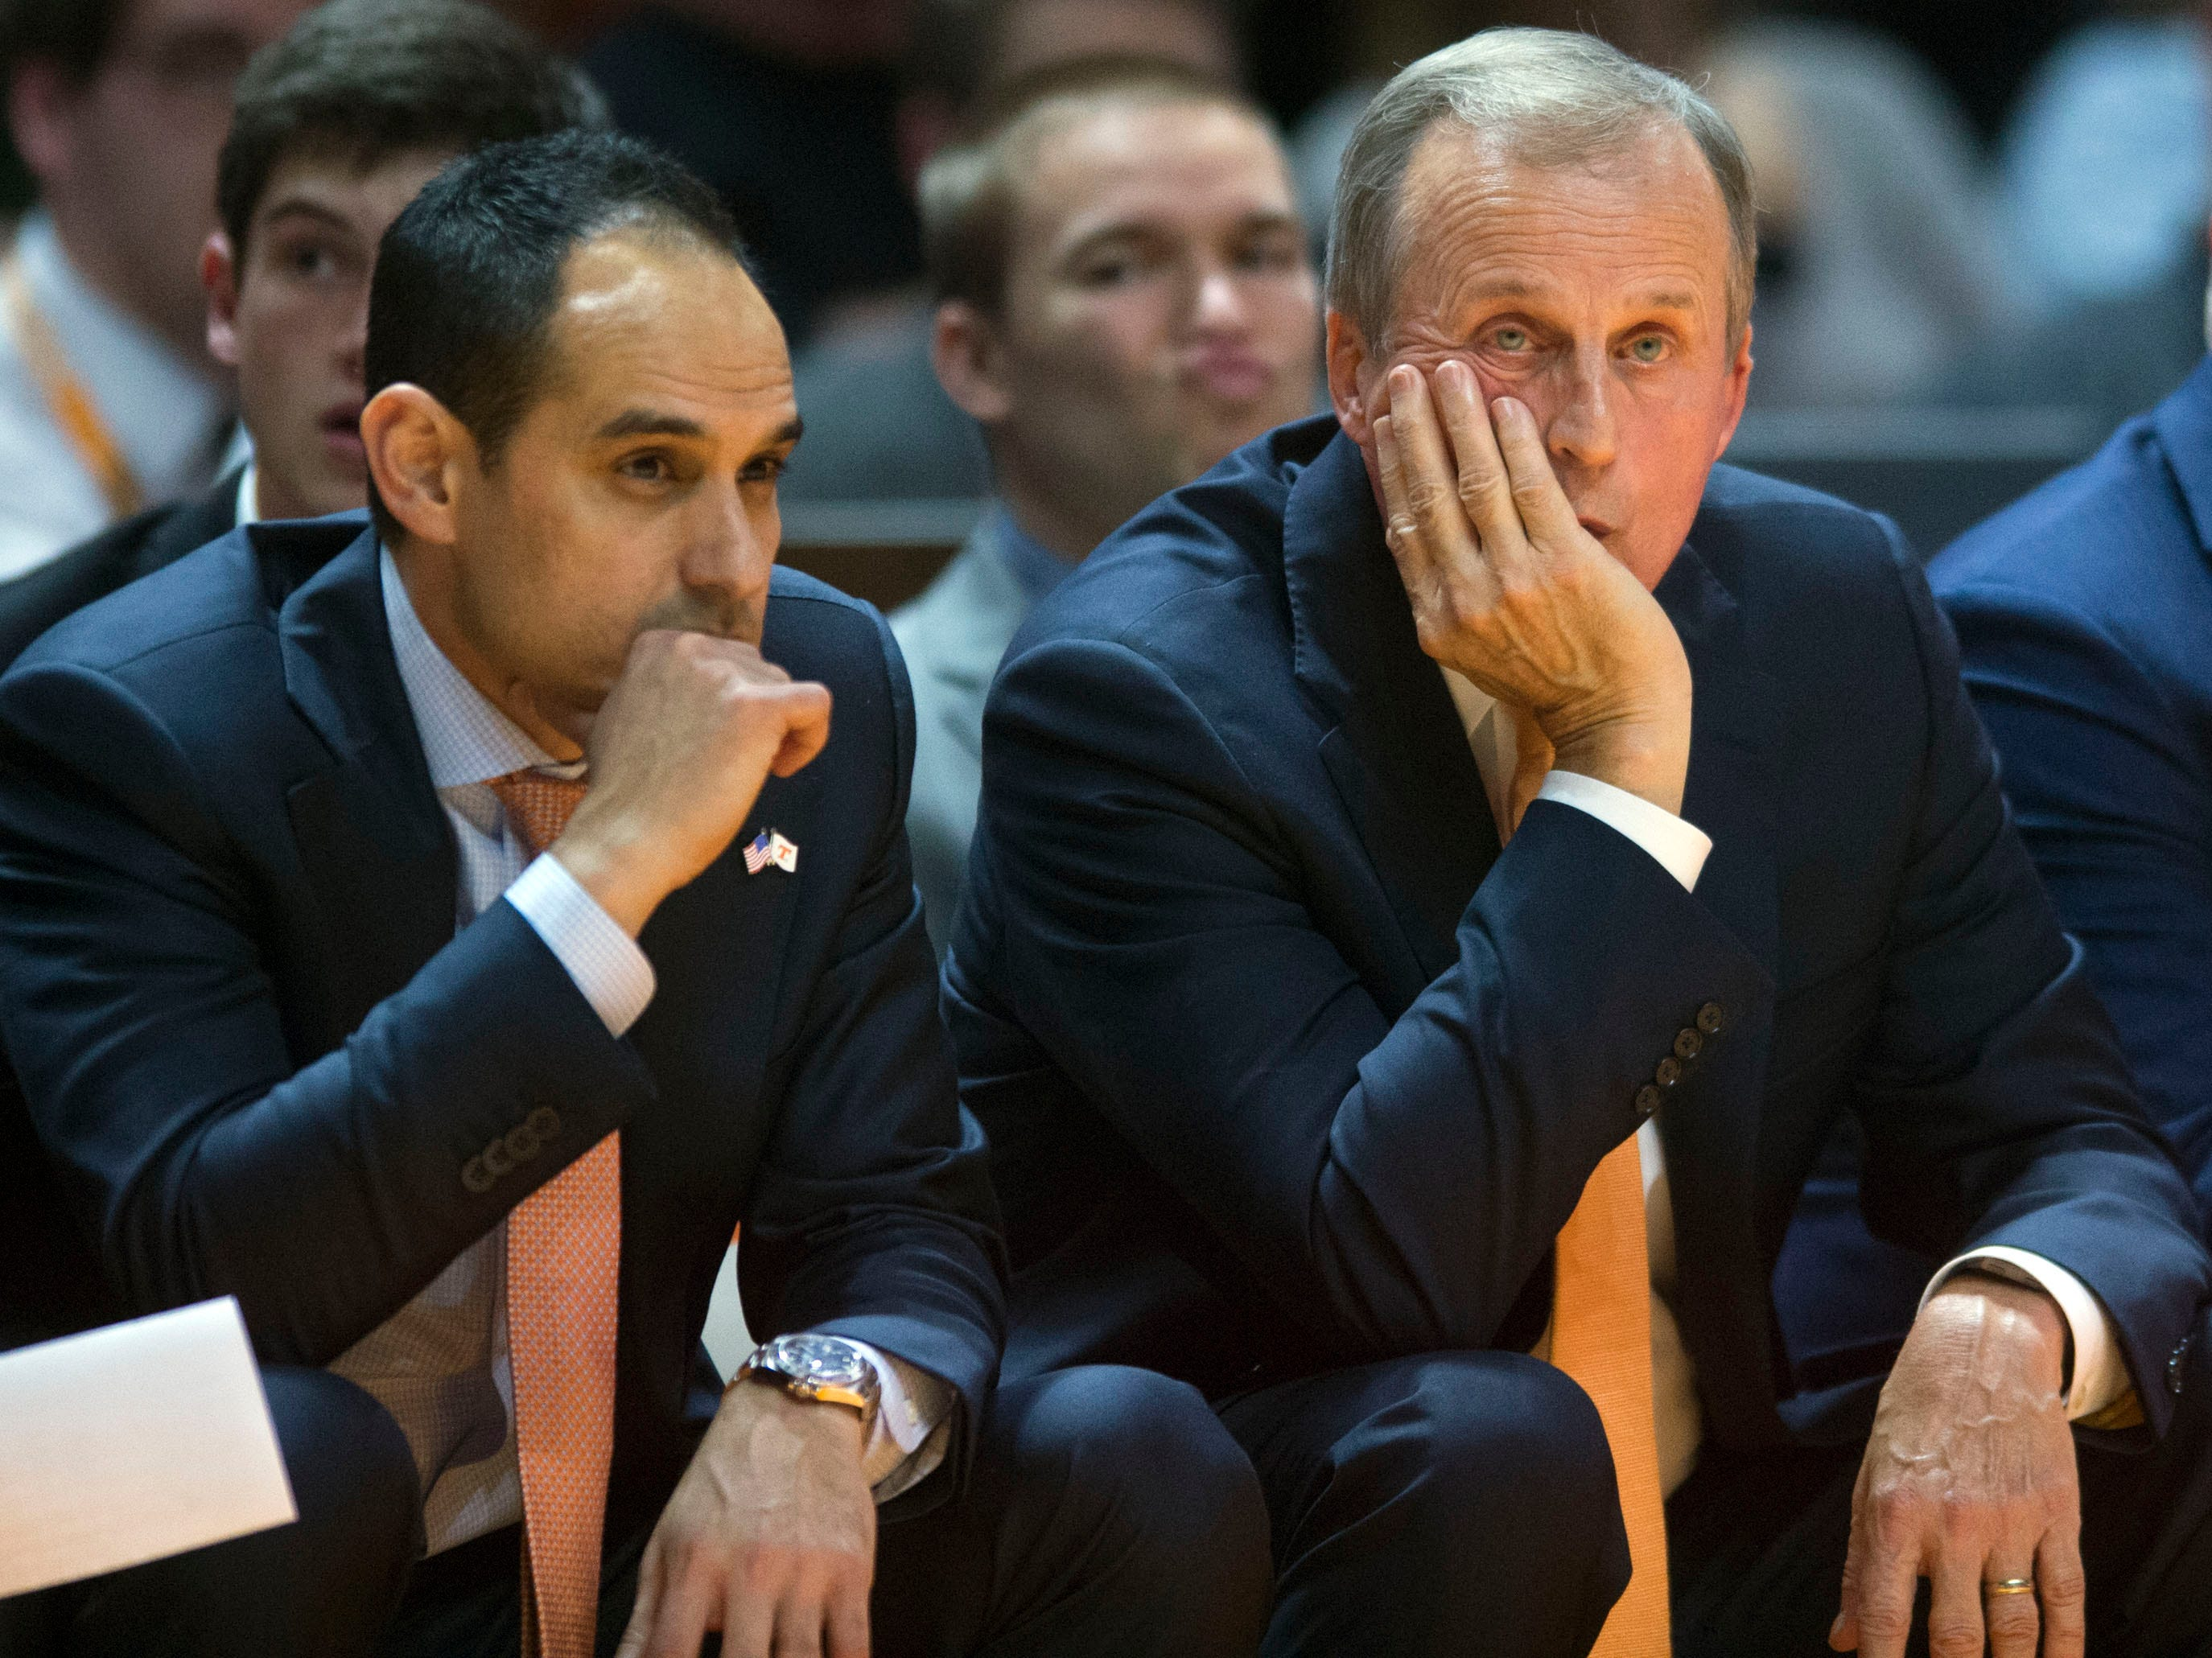 Tennessee head coach Rick Barnes and assistant coach Michael Schwartz in the final seconds of the game against Georgia Tech on Wednesday, November 14, 2018.